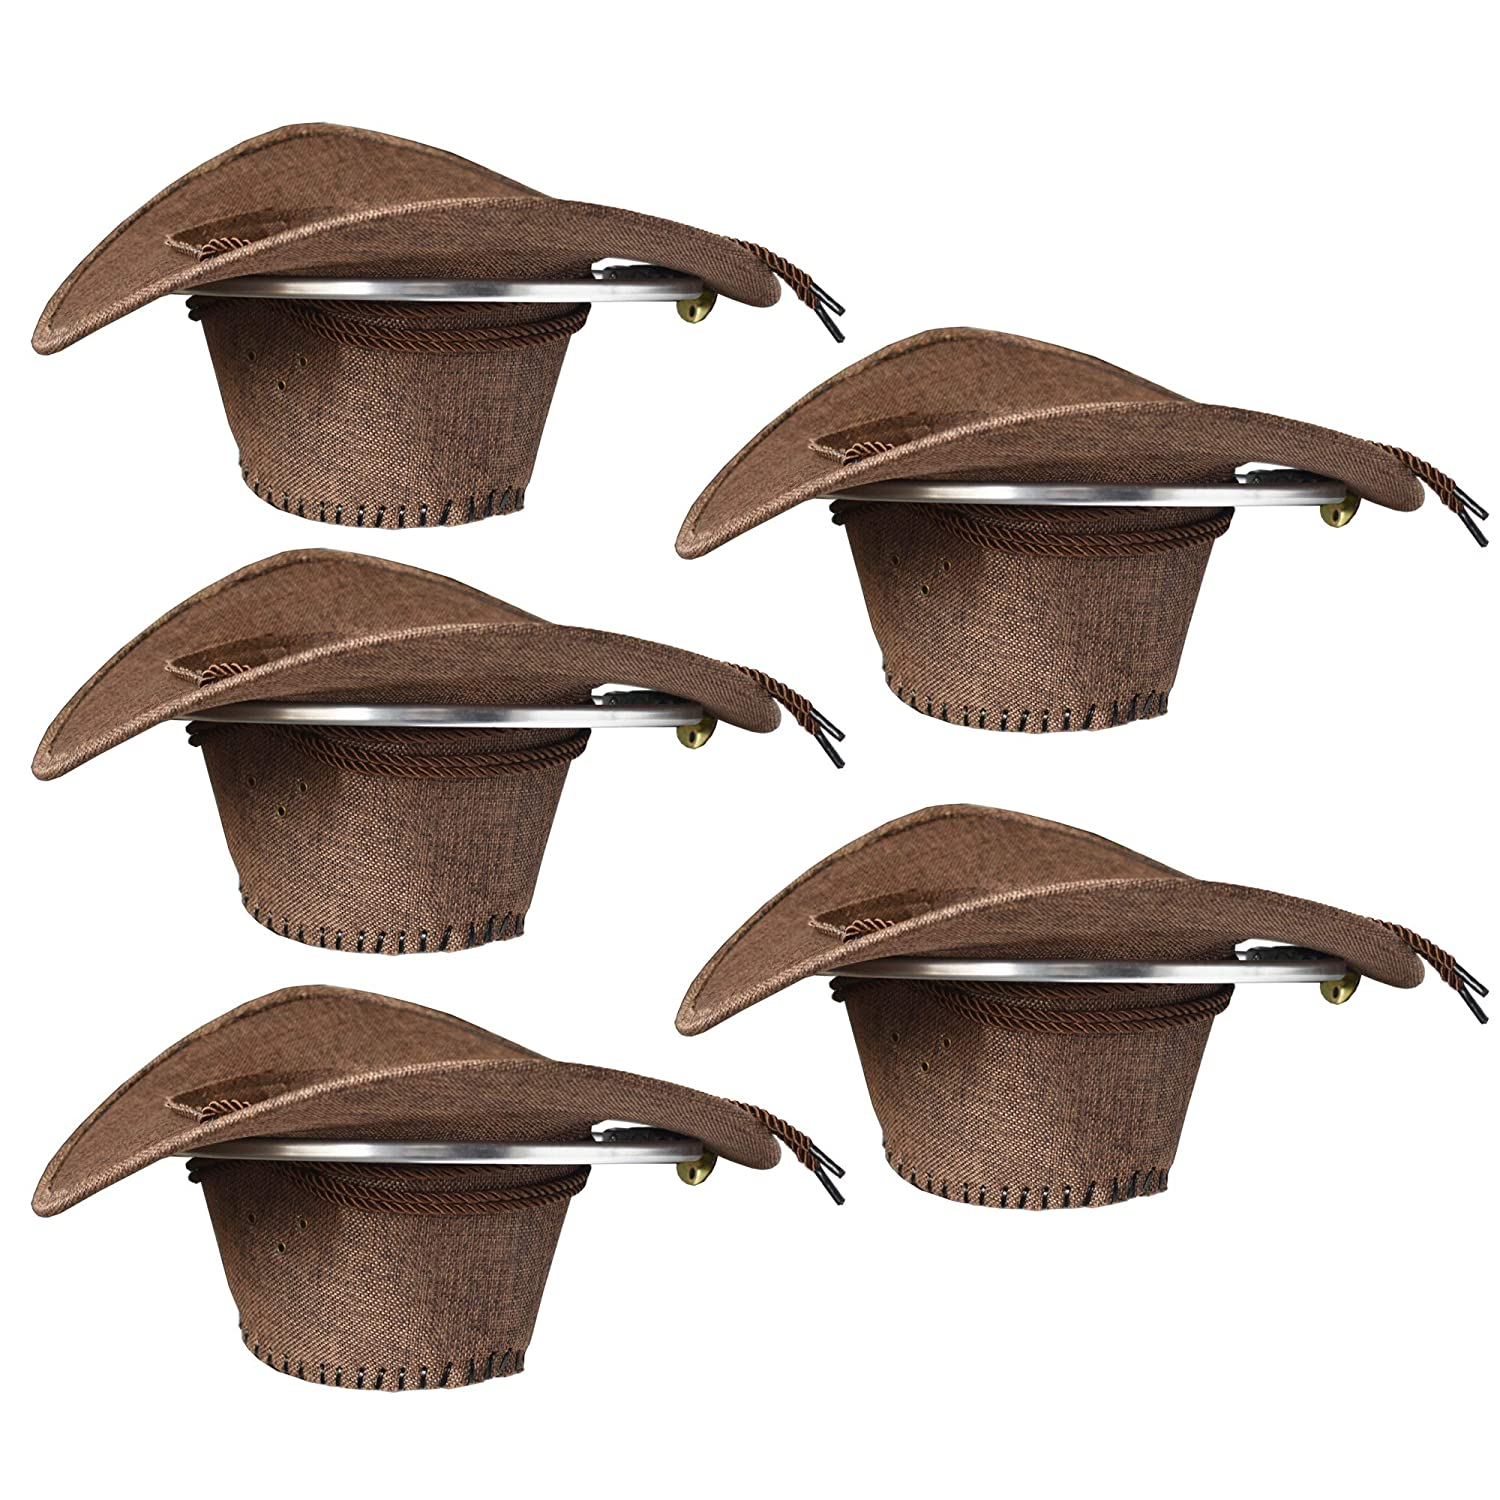 YYST Cowboy Hat Rack Cowboy Hat Holder Organizer 5  PK - No Falling - Big  Round Rack ... b72d4282b983